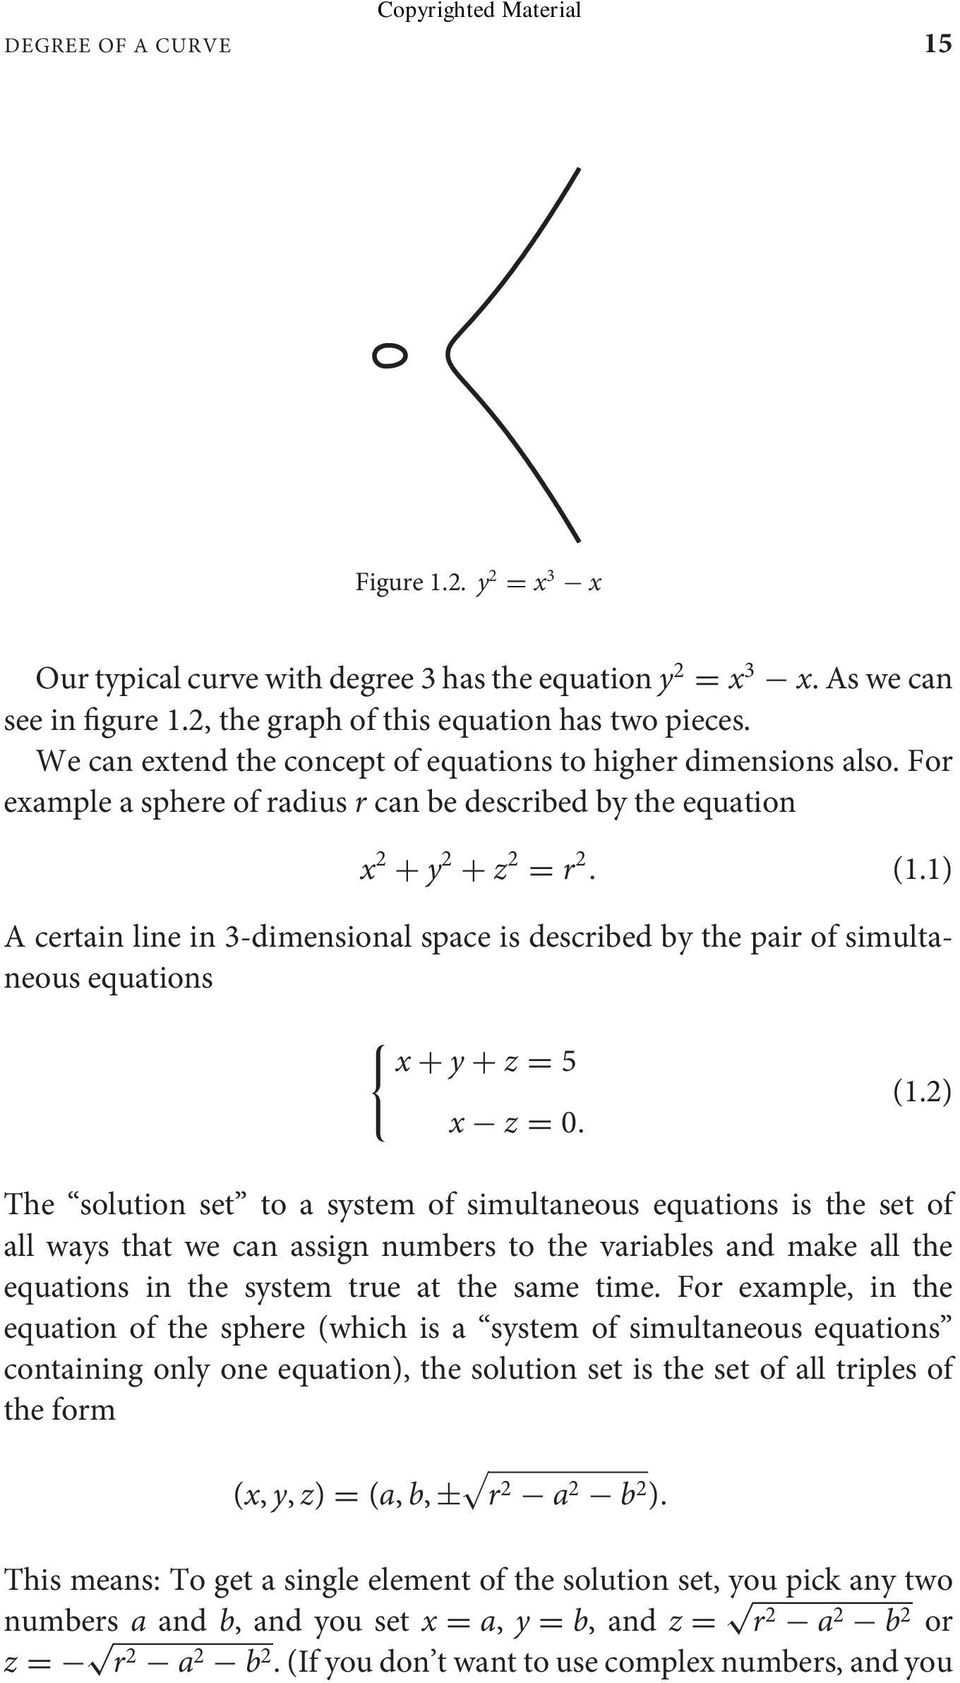 1) A certain line in 3-dimensional space is described by the pair of simultaneous equations x + y + z = 5 x z = 0. (1.